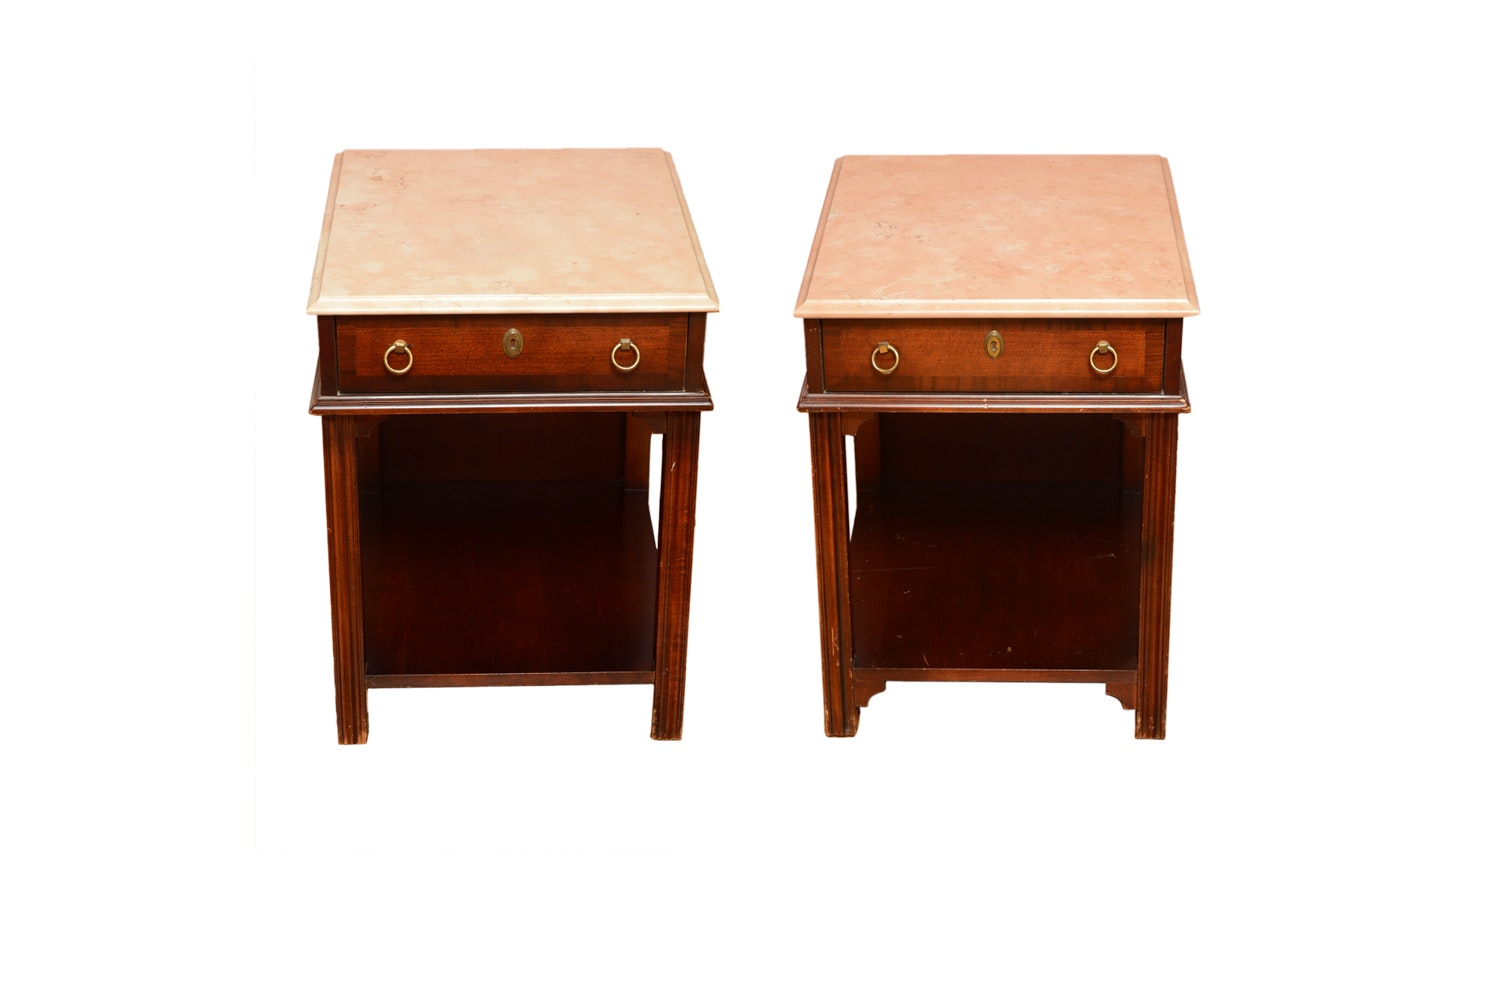 Vintage Mahogany Side Tables By Fleetwood Fine Furniture ...